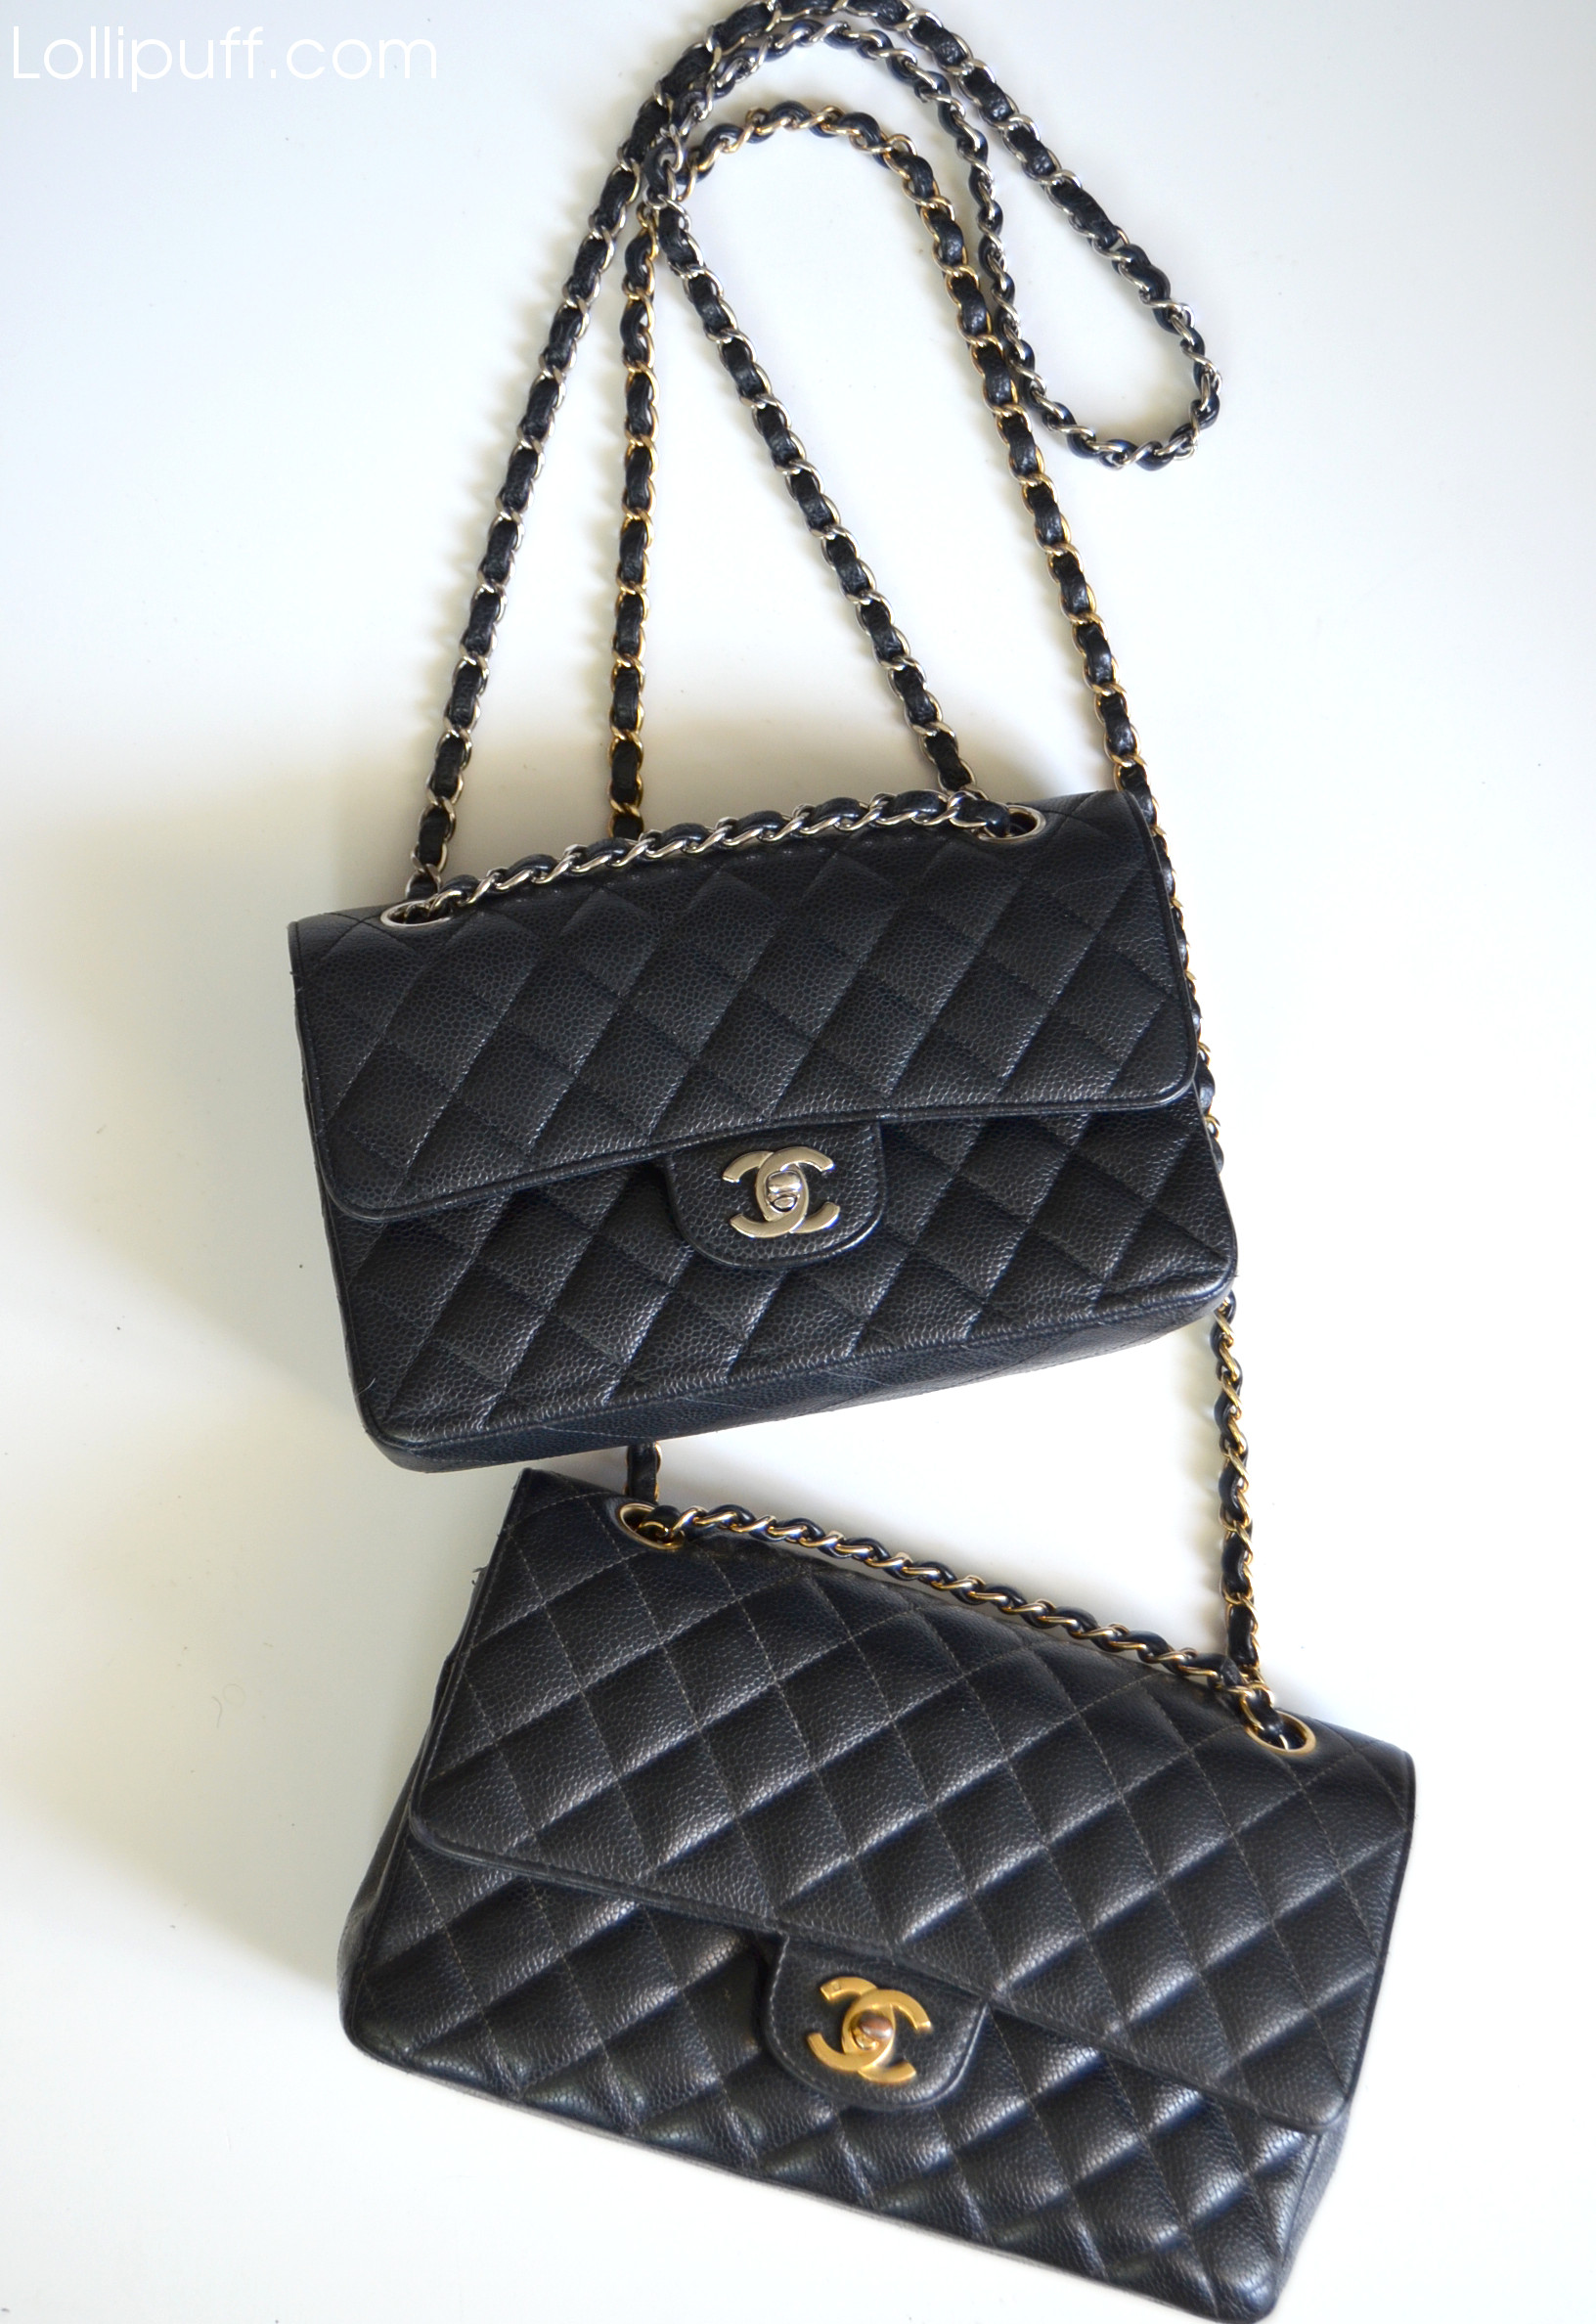 ac3dff2eff37 Chanel Classic Double Flap: Small vs Medium & Gold vs Silver | Lollipuff